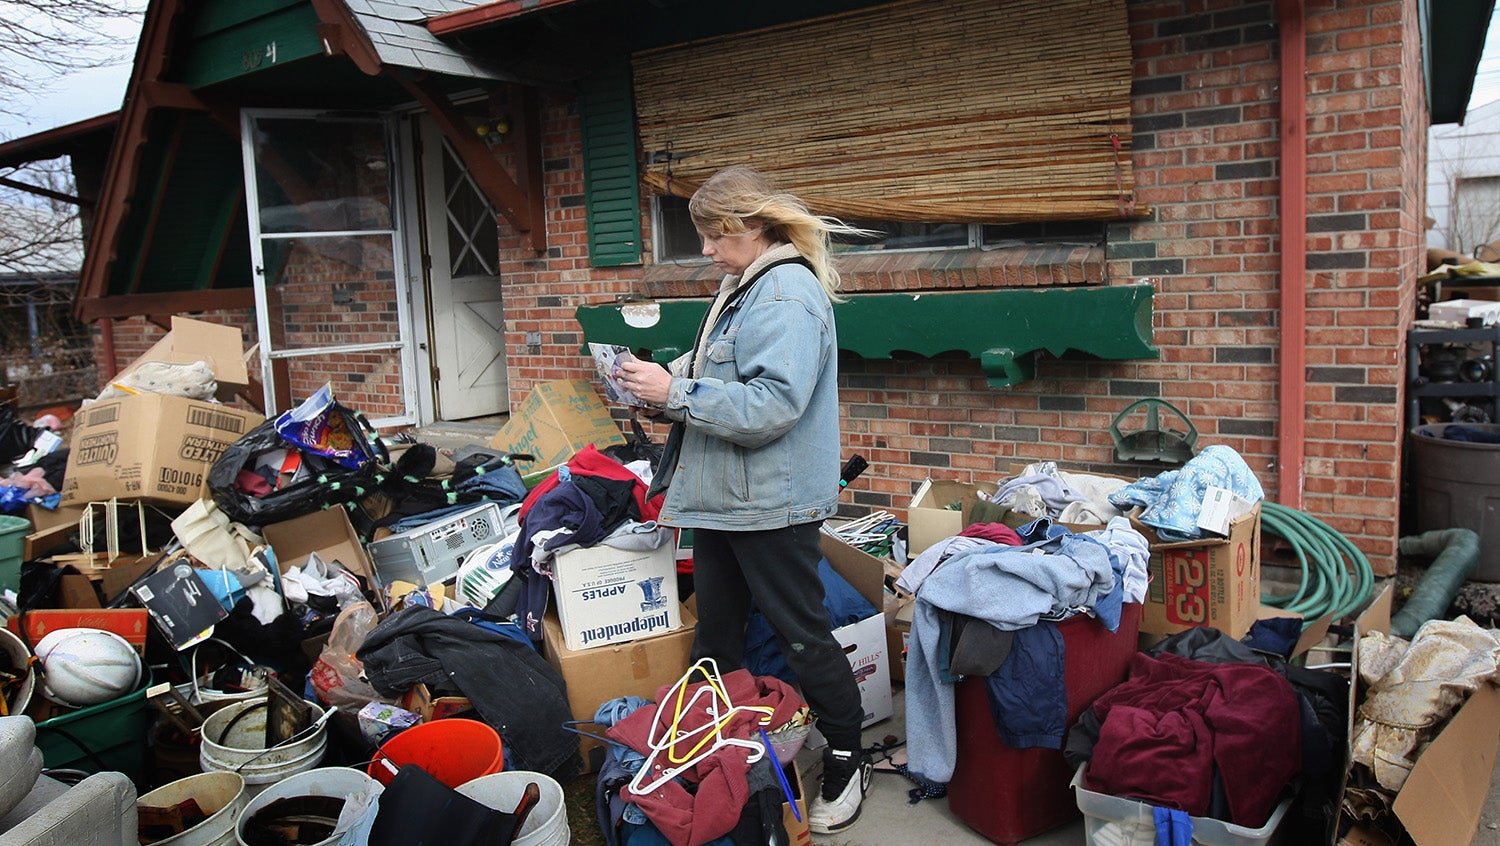 pregnant woman housing eviction with boxes outside her home